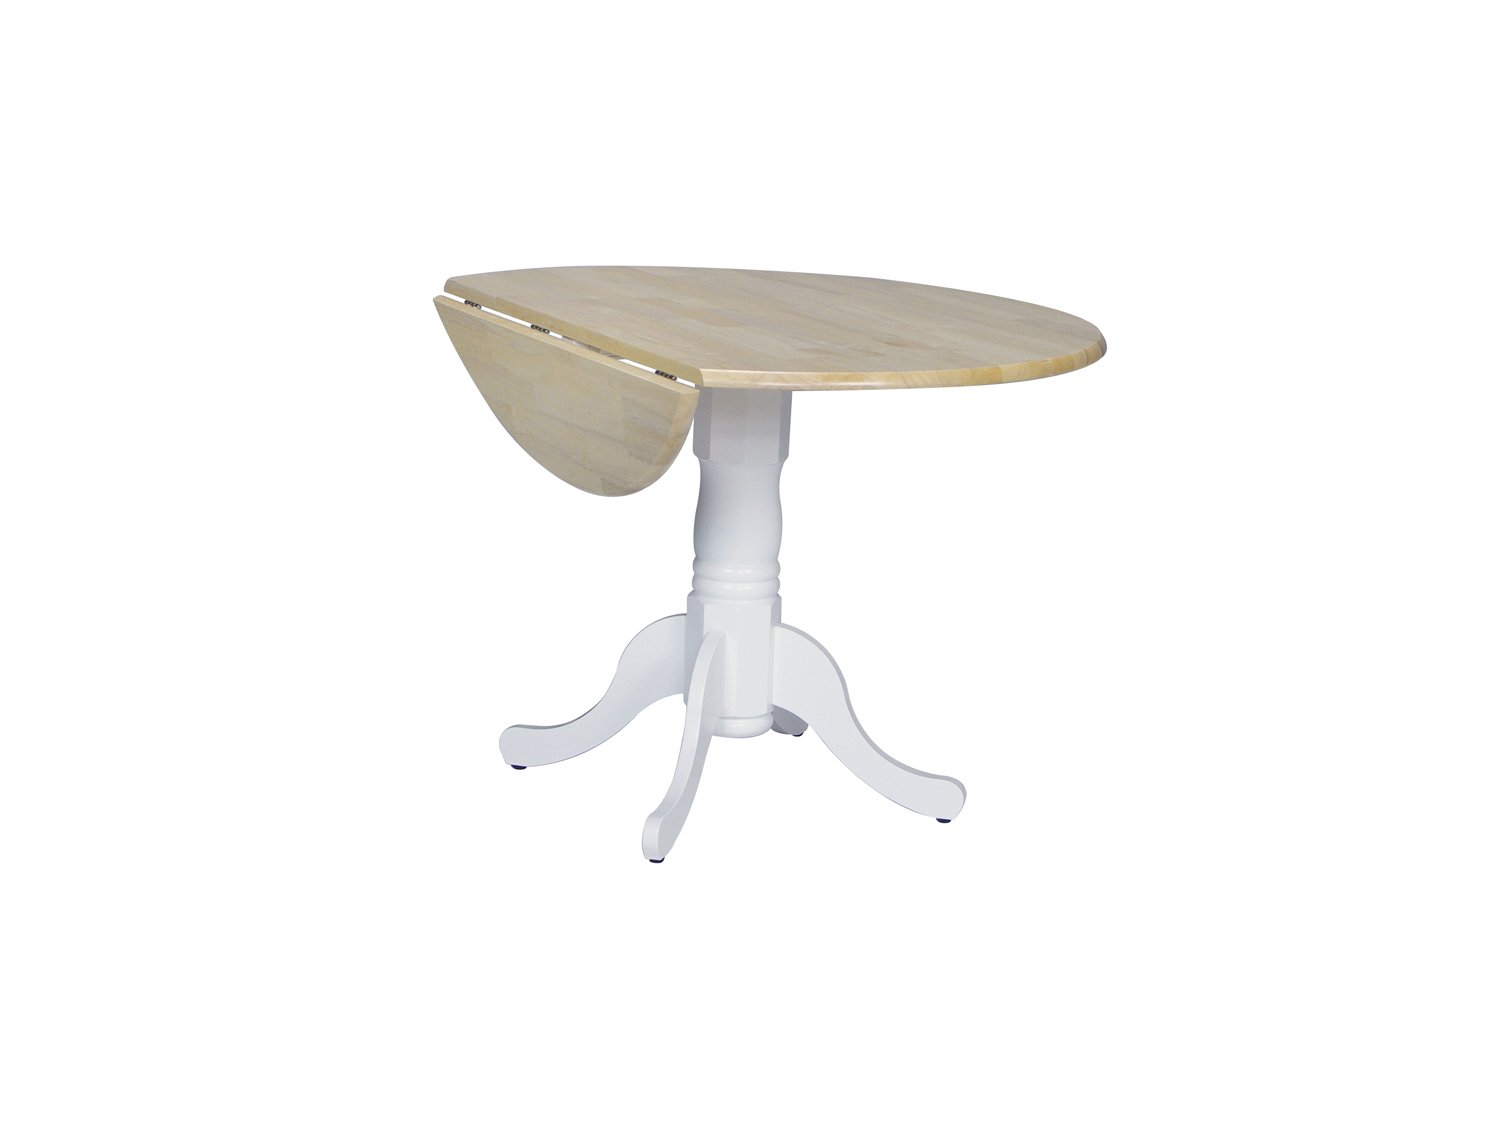 International Concepts T02-42DP 42-Inch Round Dual Drop Leaf Ped Table, White/Natural by International Concepts